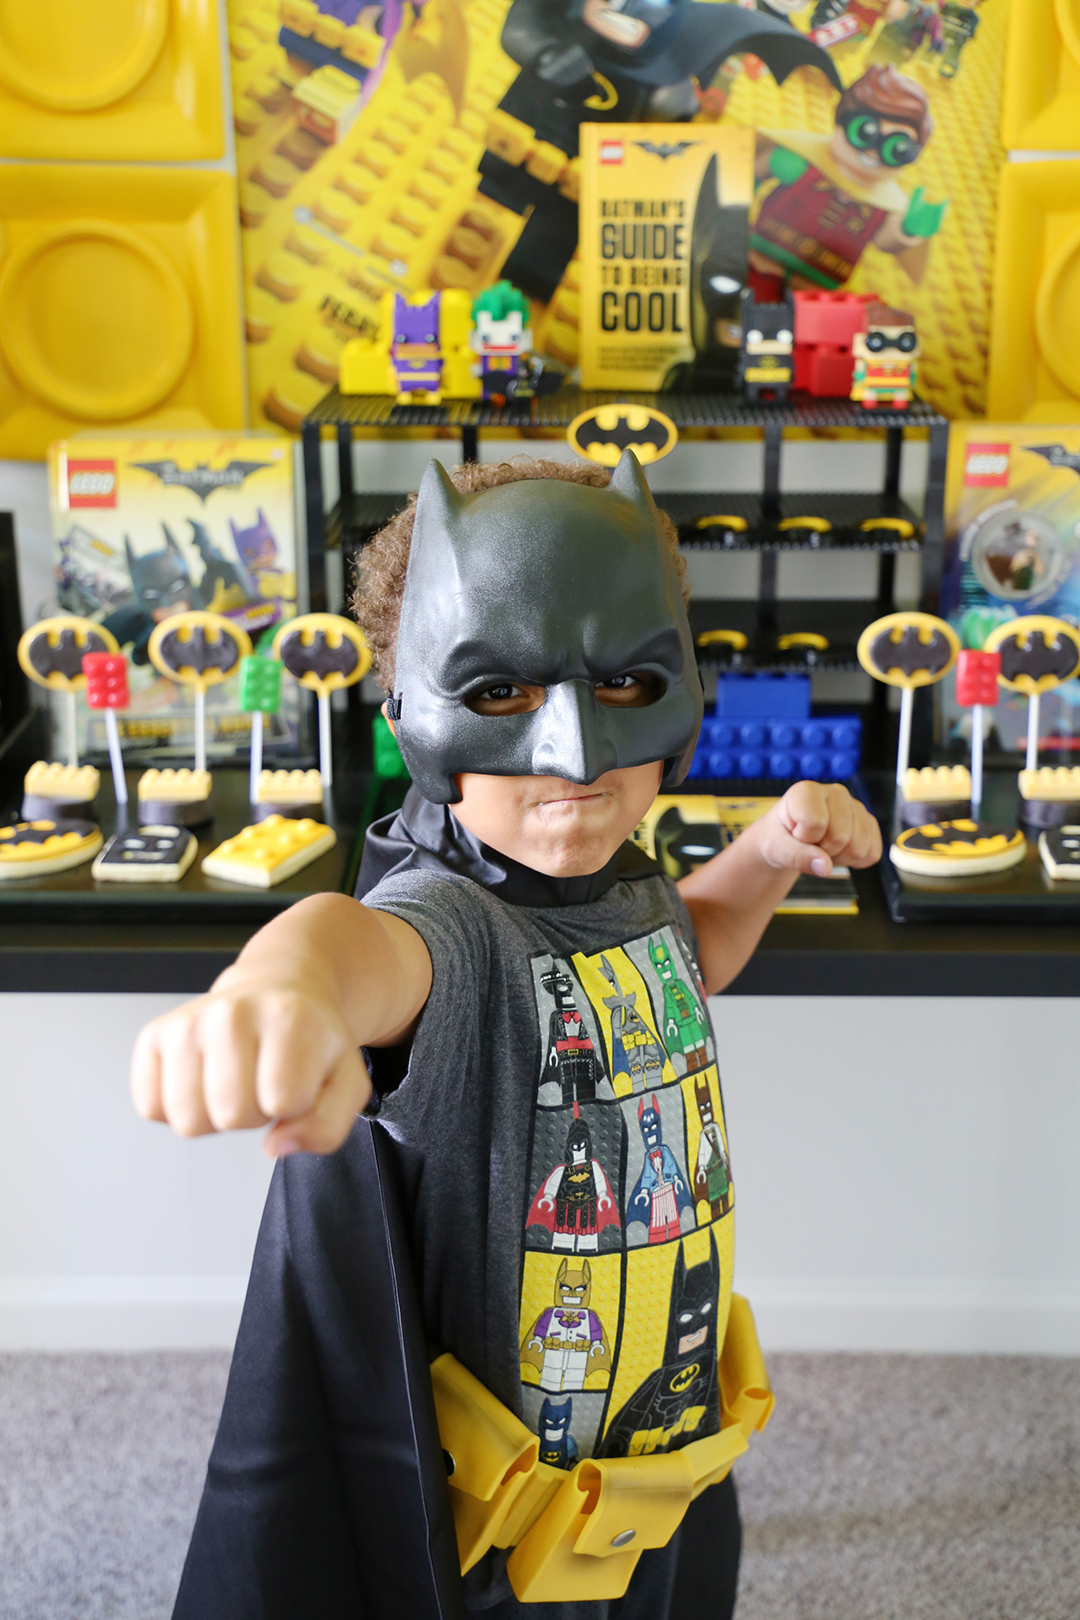 Lego Batman Party Ideas - Costumes